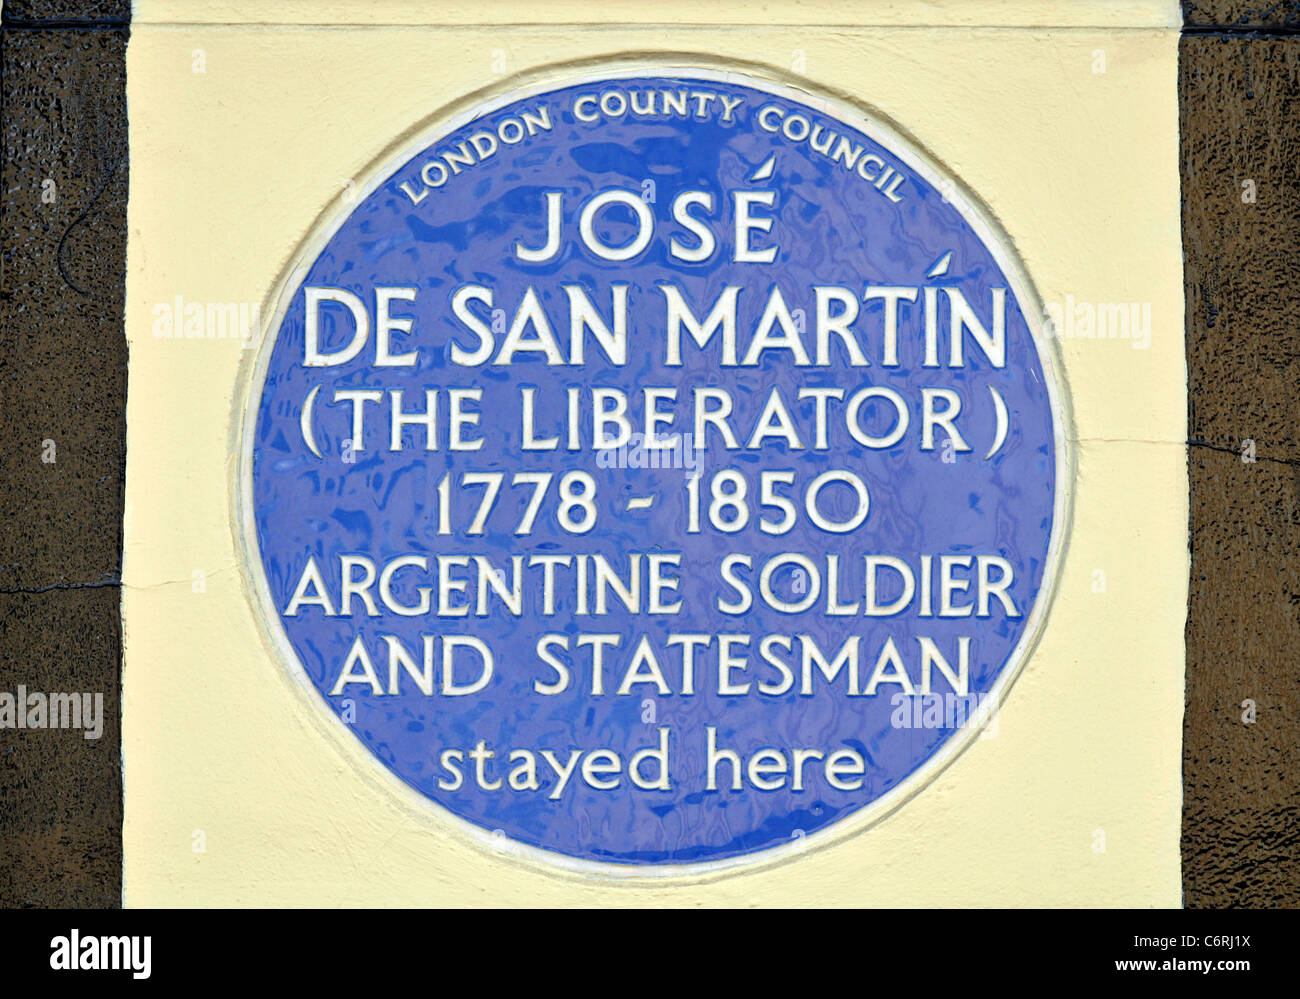 Jose De San Martin Blue Plaque, Park Road, London, Britain, UK - Stock Image